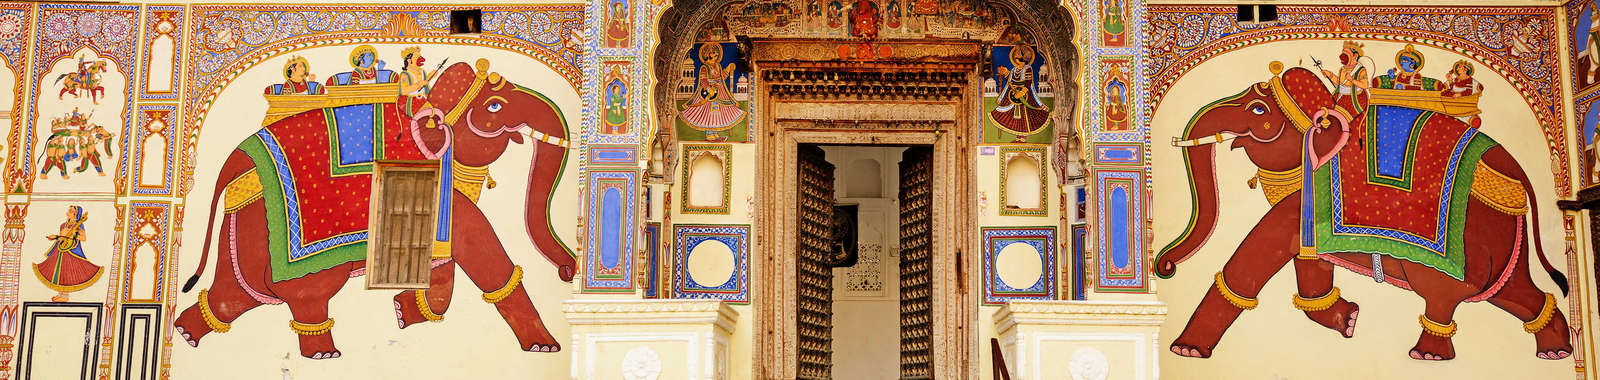 Experience Rajasthan's forts and palaces on a luxury tailor-made holiday to north India